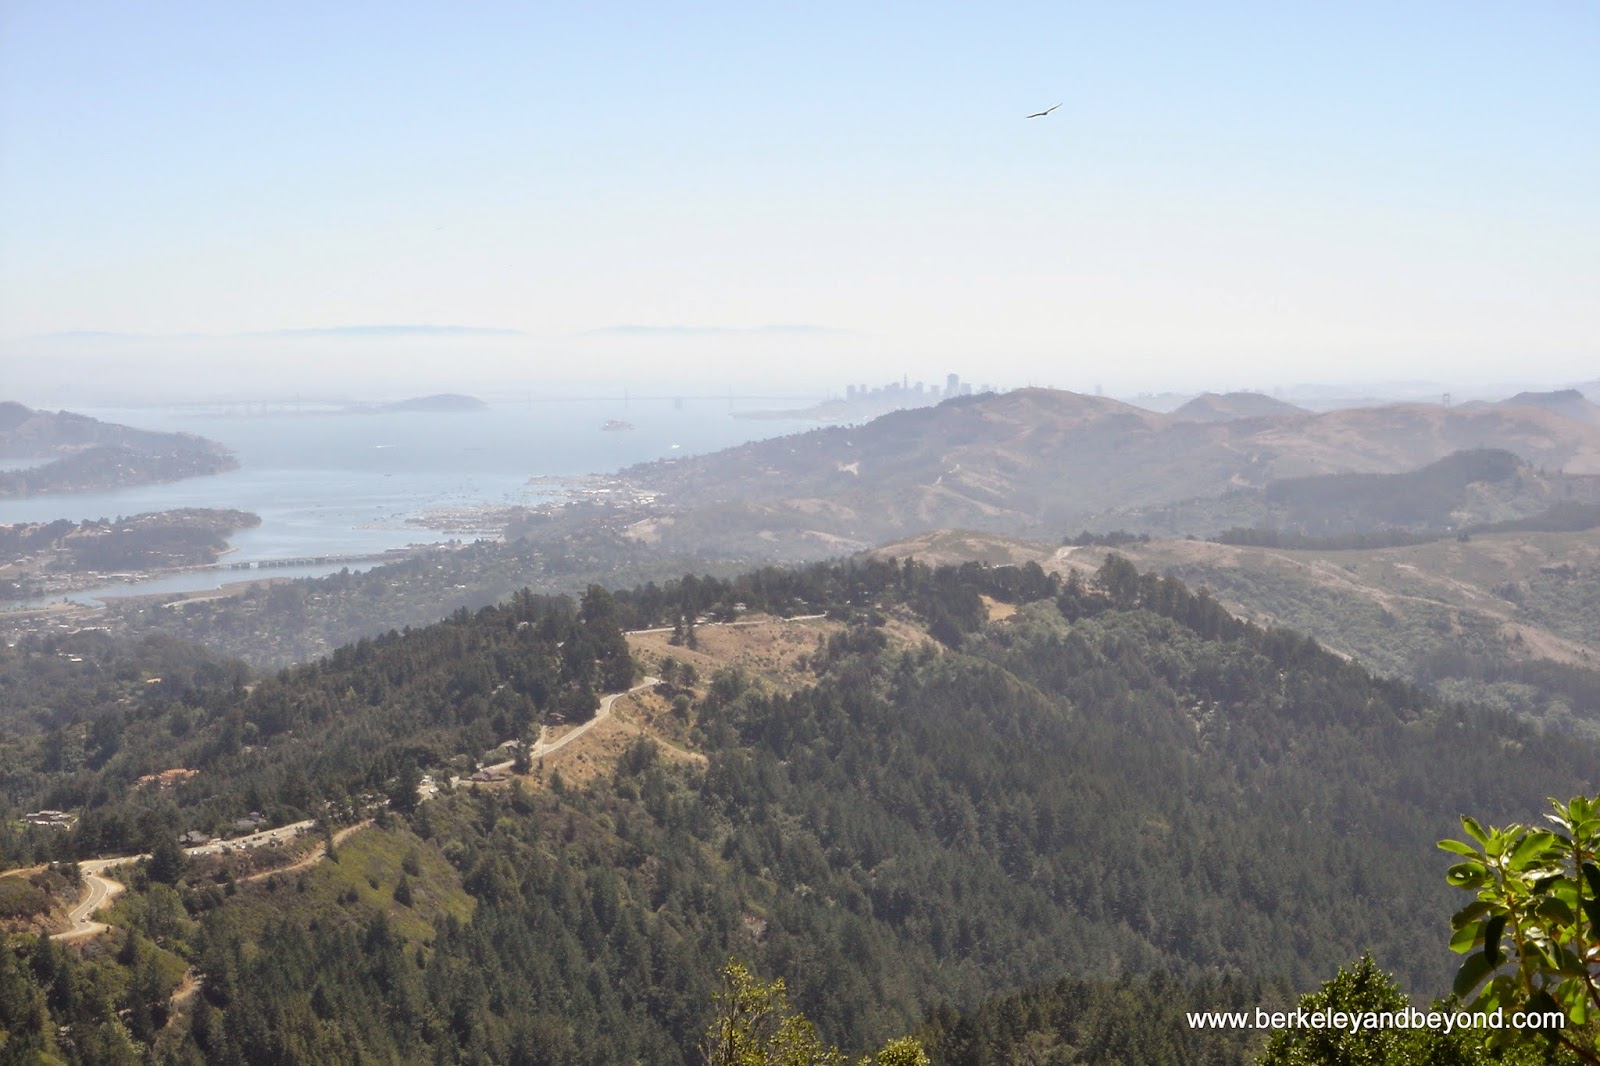 view of San Francisco from Matt Davis Trail in Mill Valley, CA